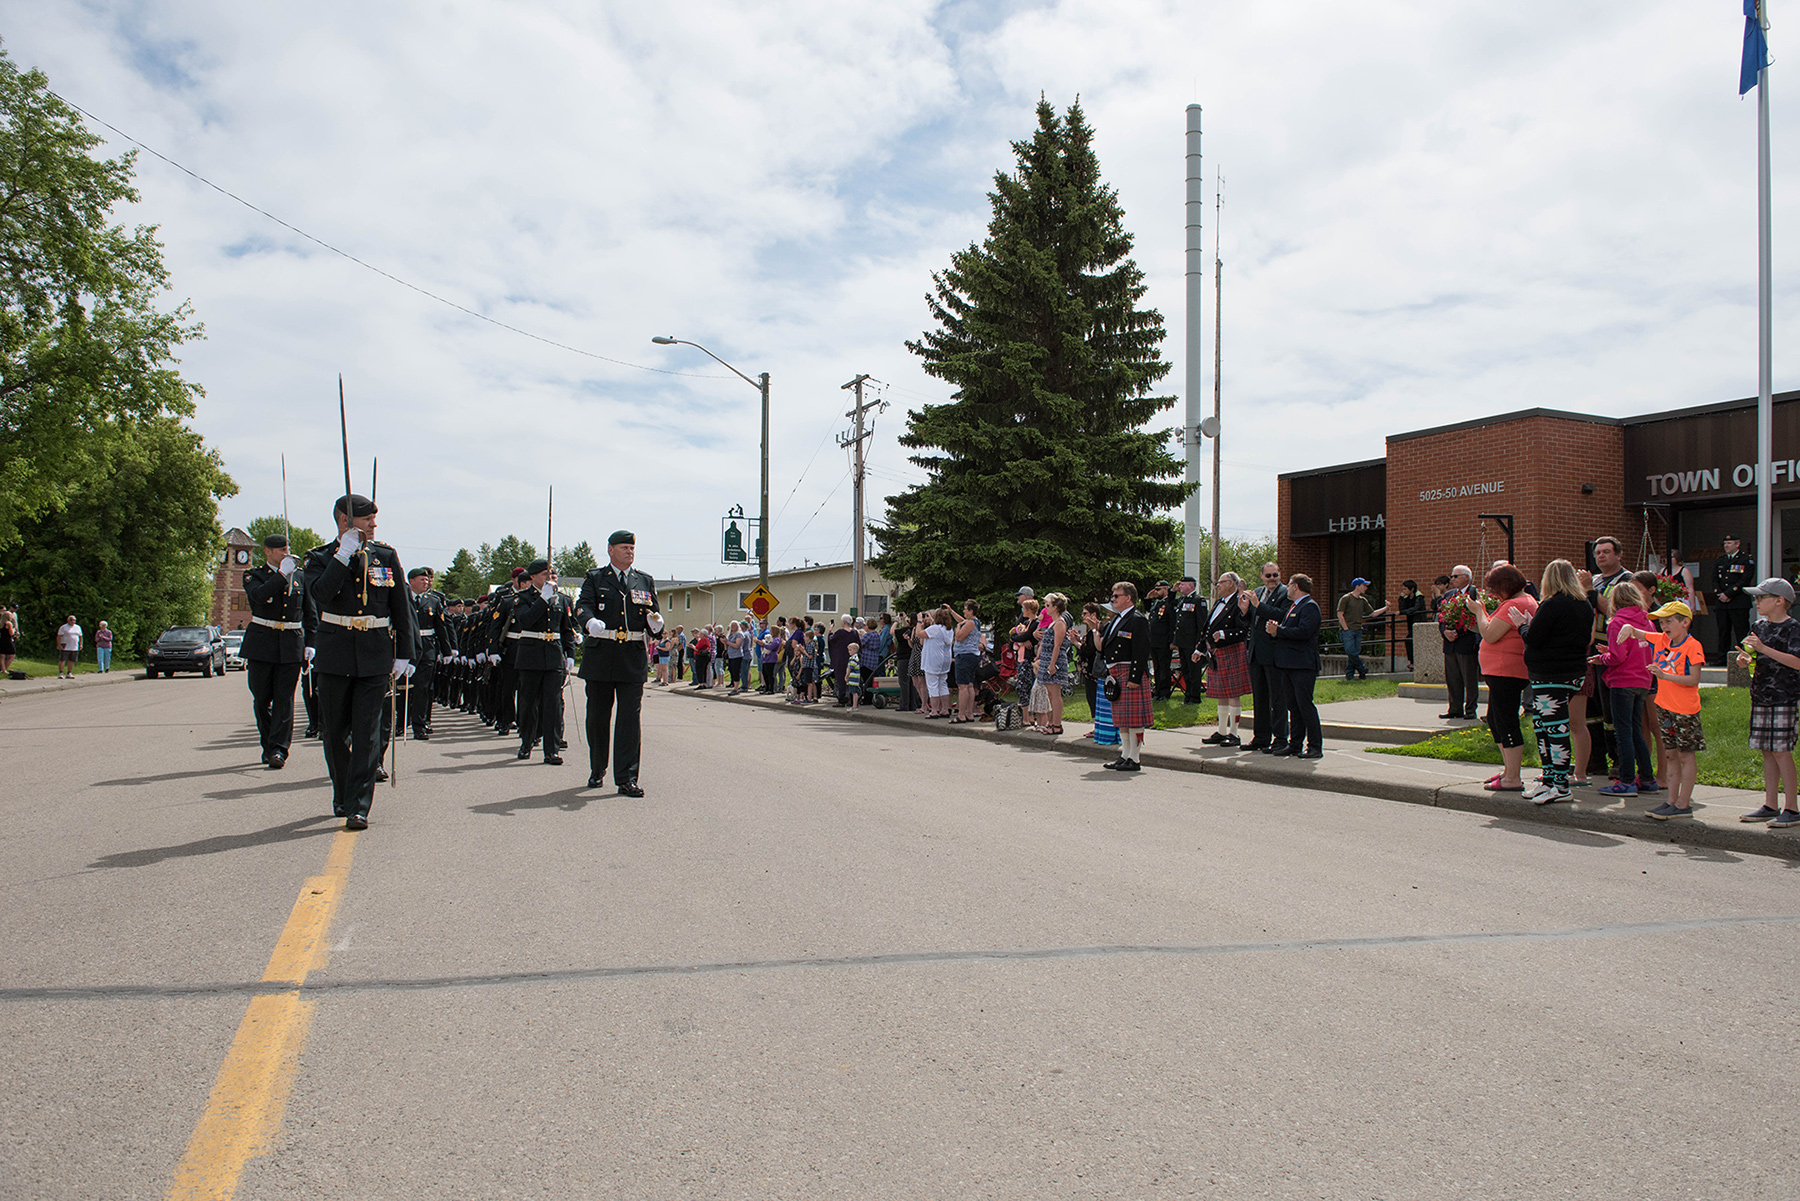 Lieutenant Colonel Ryan Smith, Commanding Officer of 1 Combat Engineer Regiment, salutes Mayor Randy Boyd as he marches his soldiers past the Bon Accord Town Hall in a Freedom of the City parade in Bon Accord, Alberta on June 3, 2017. Photo: Master Corporal Andrew Davis, 3rd Canadian Division Support Base Edmonton. © 2017 DND-MDN Canada